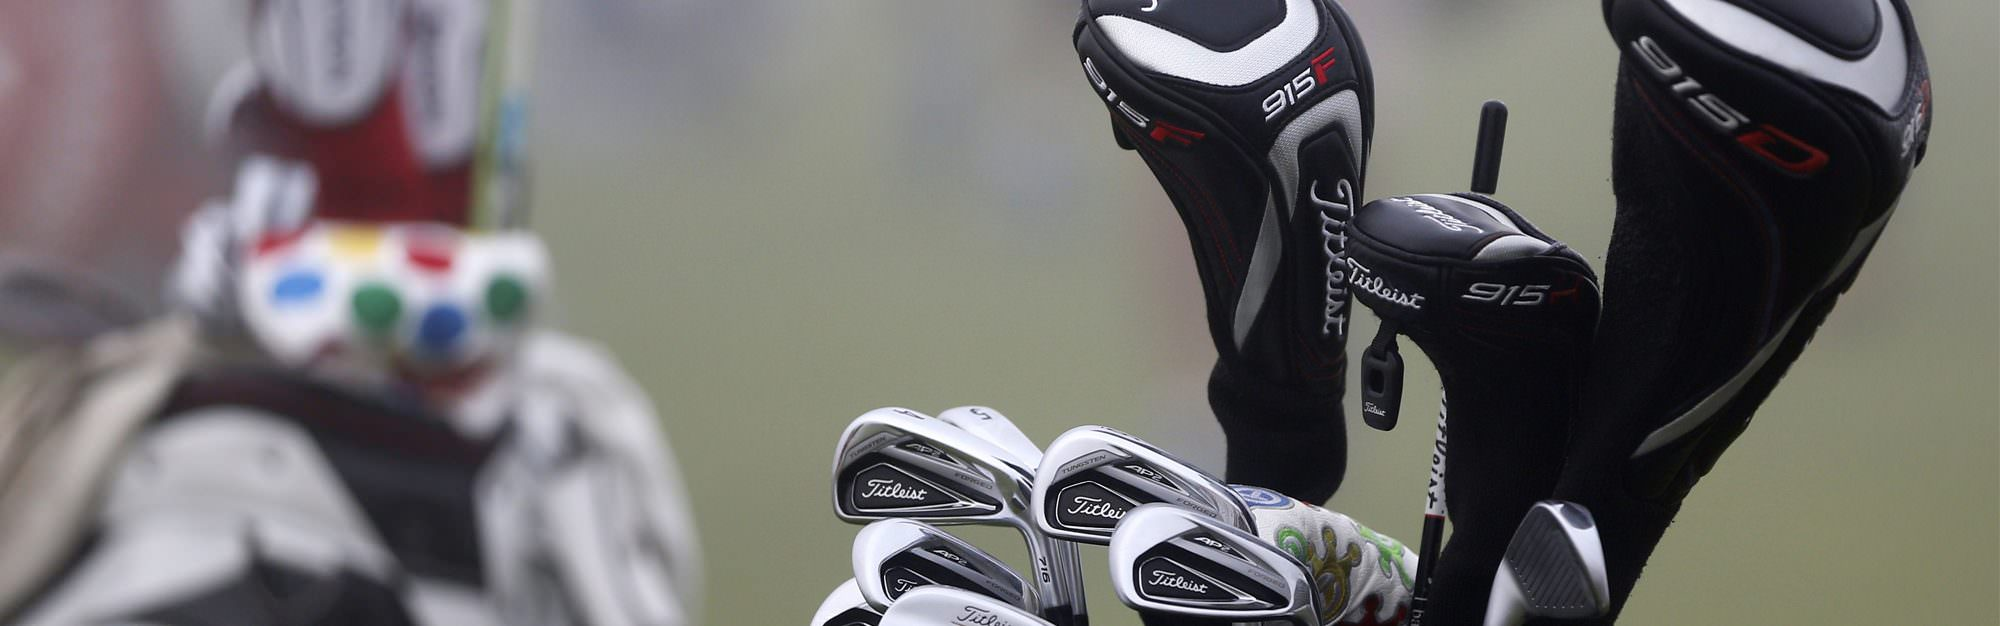 Why can golfers only carry up to 14 clubs?